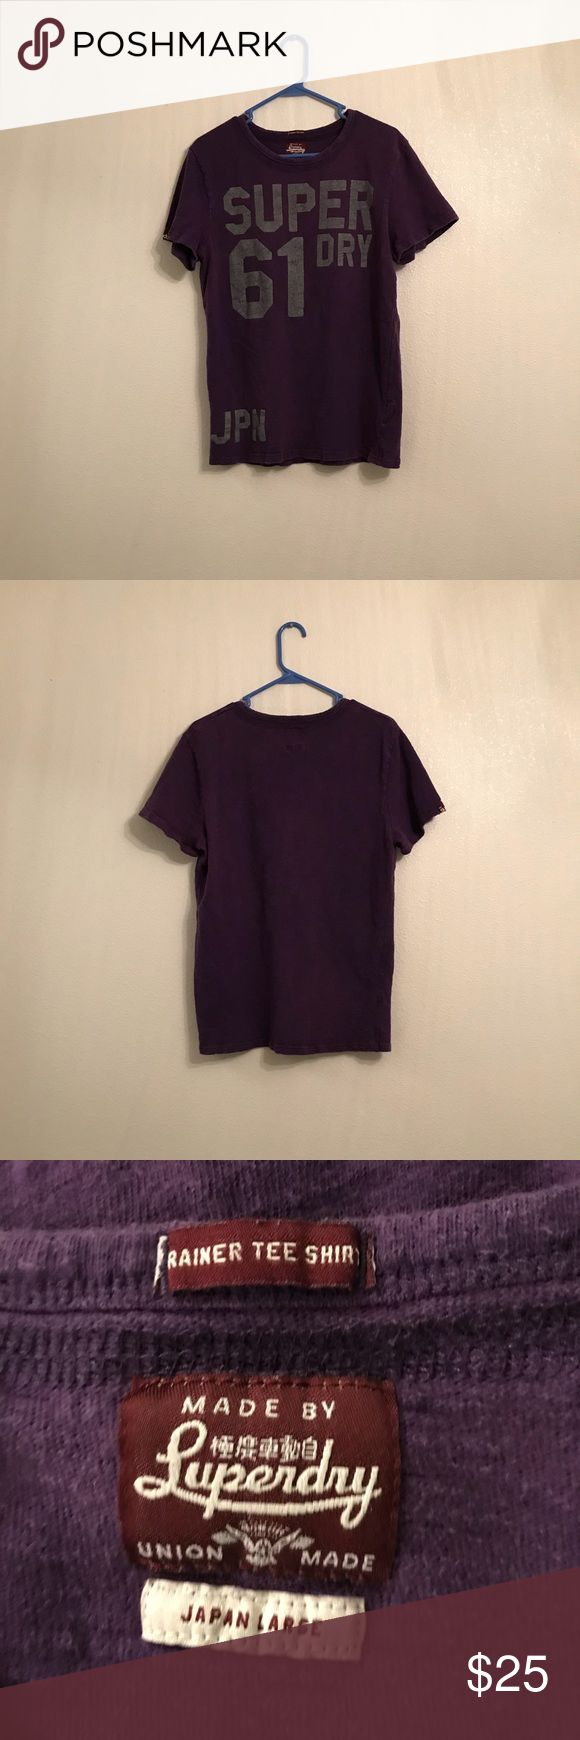 Super Dry Trainer Tee Shirt Japan Large Super Dry Trainer Tee Shirt Men's Japan Large Good Used Condition has a Distressed look to it Super Dry Shirts Tees - Short Sleeve